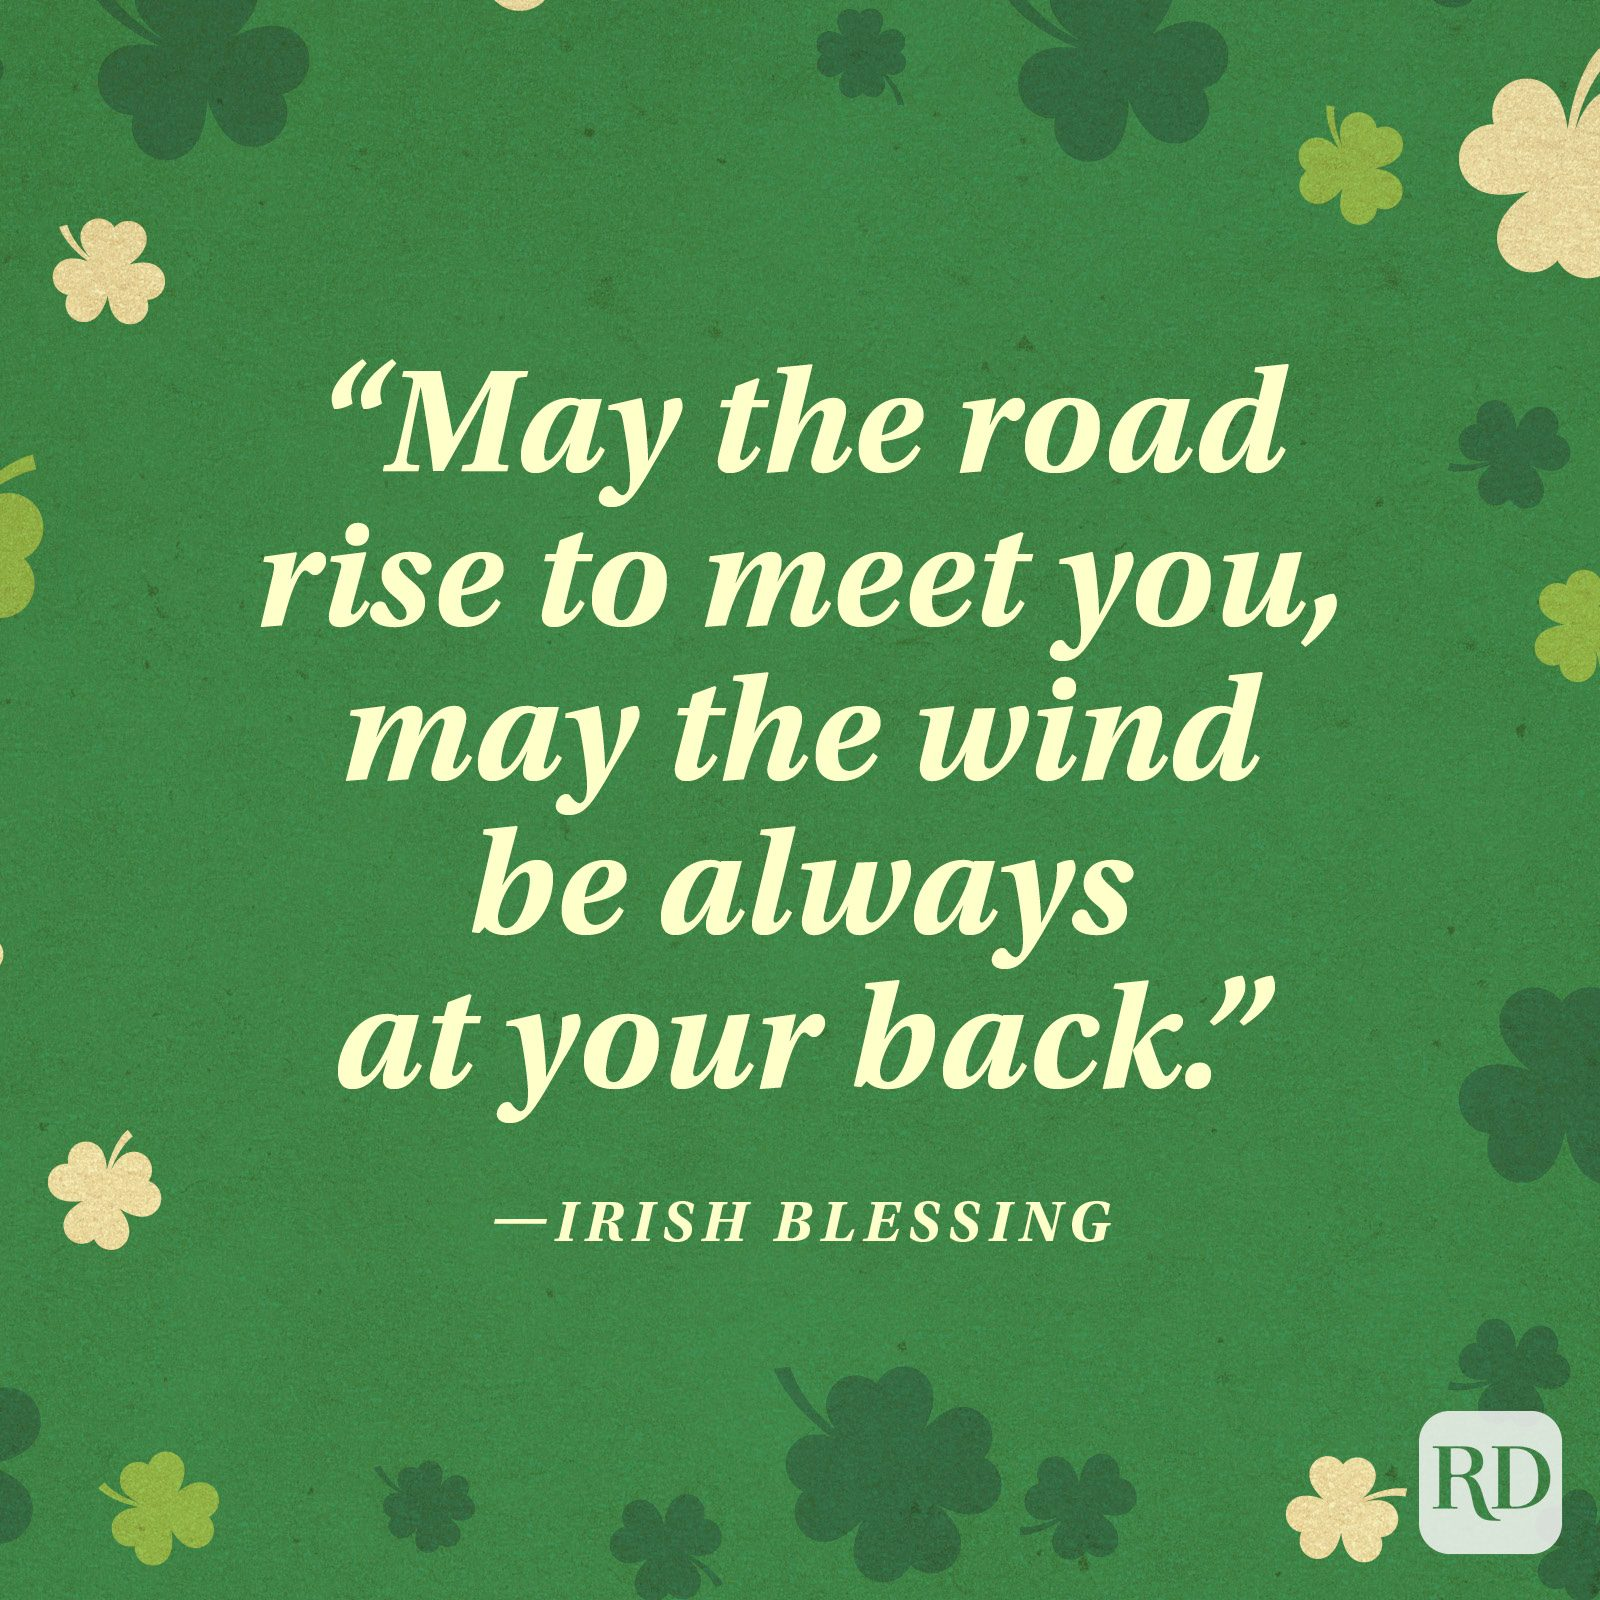 """May the road rise to meet you, may the wind be always at your back."" —Irish blessing"